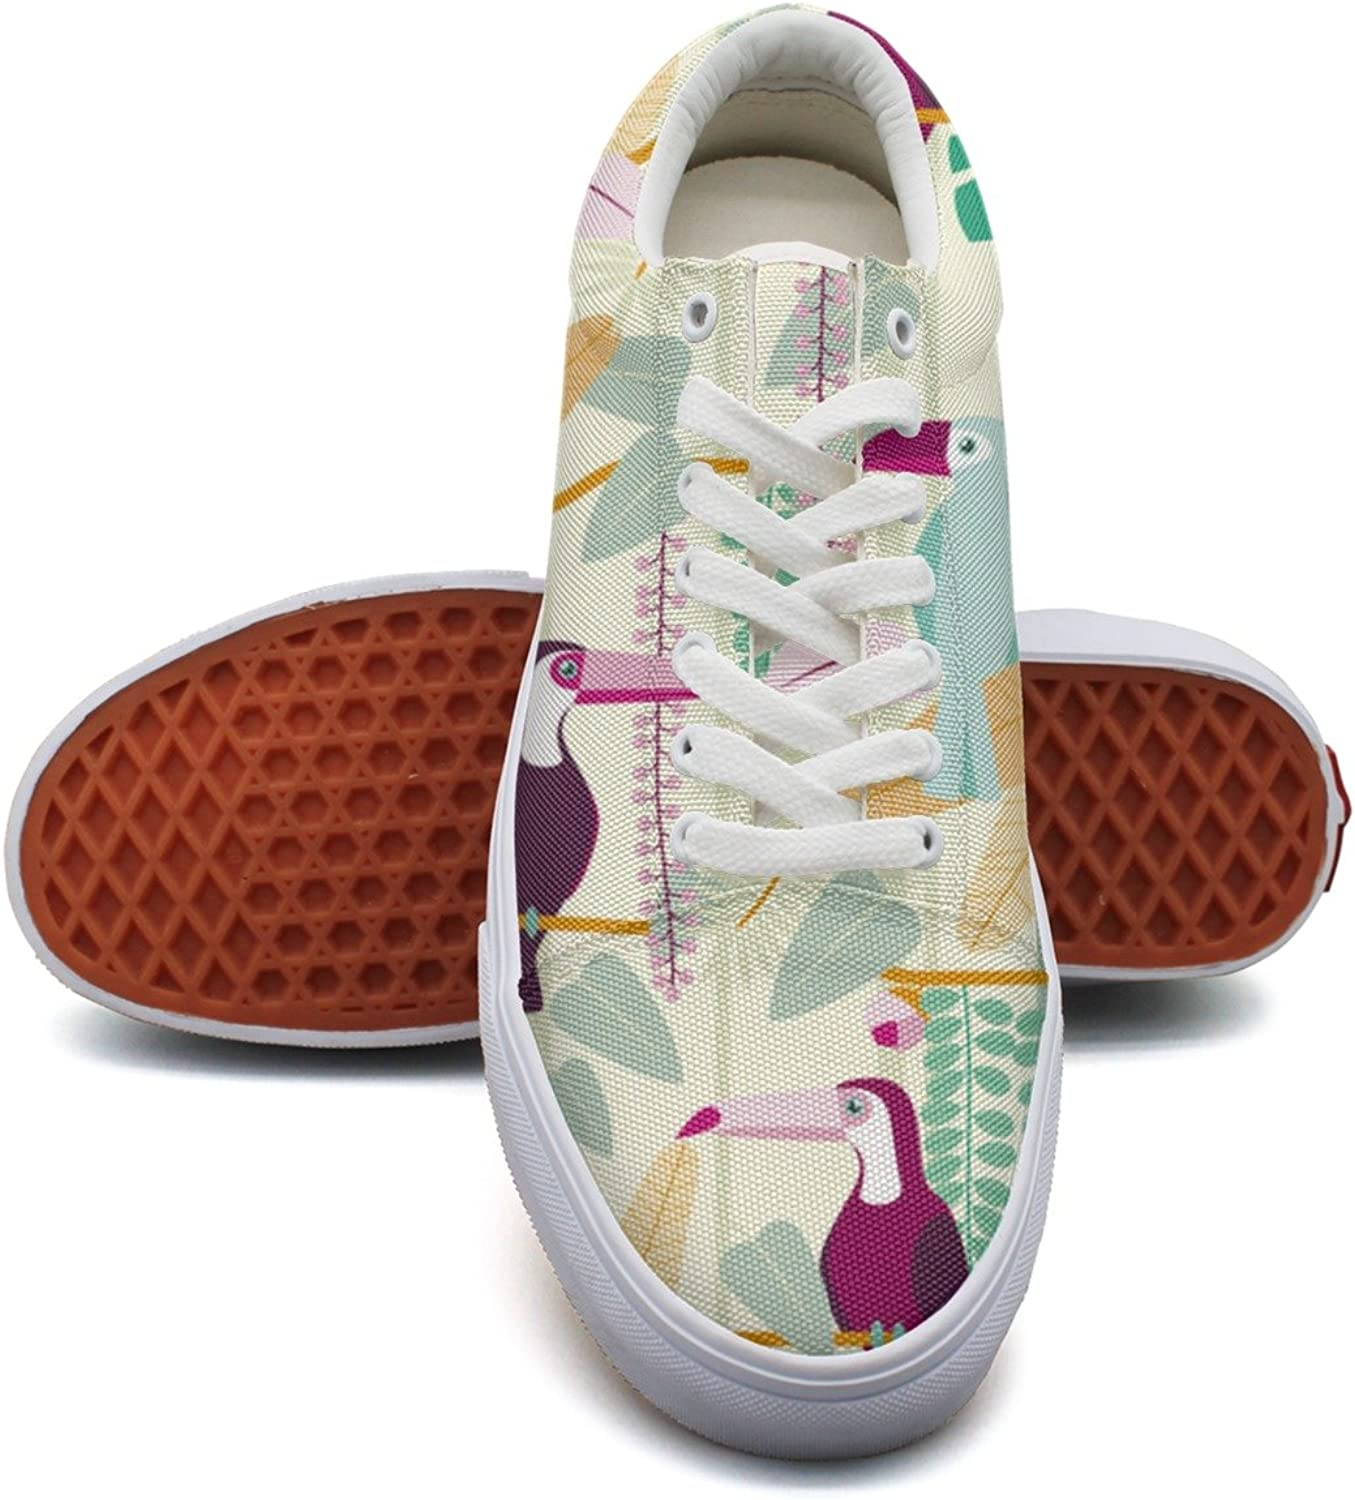 Feenfling Tropical Toucan Jungle Birds Leaves Womens Denim Canvas Sneakers Low Top Popular Basketball Sneakers for Women